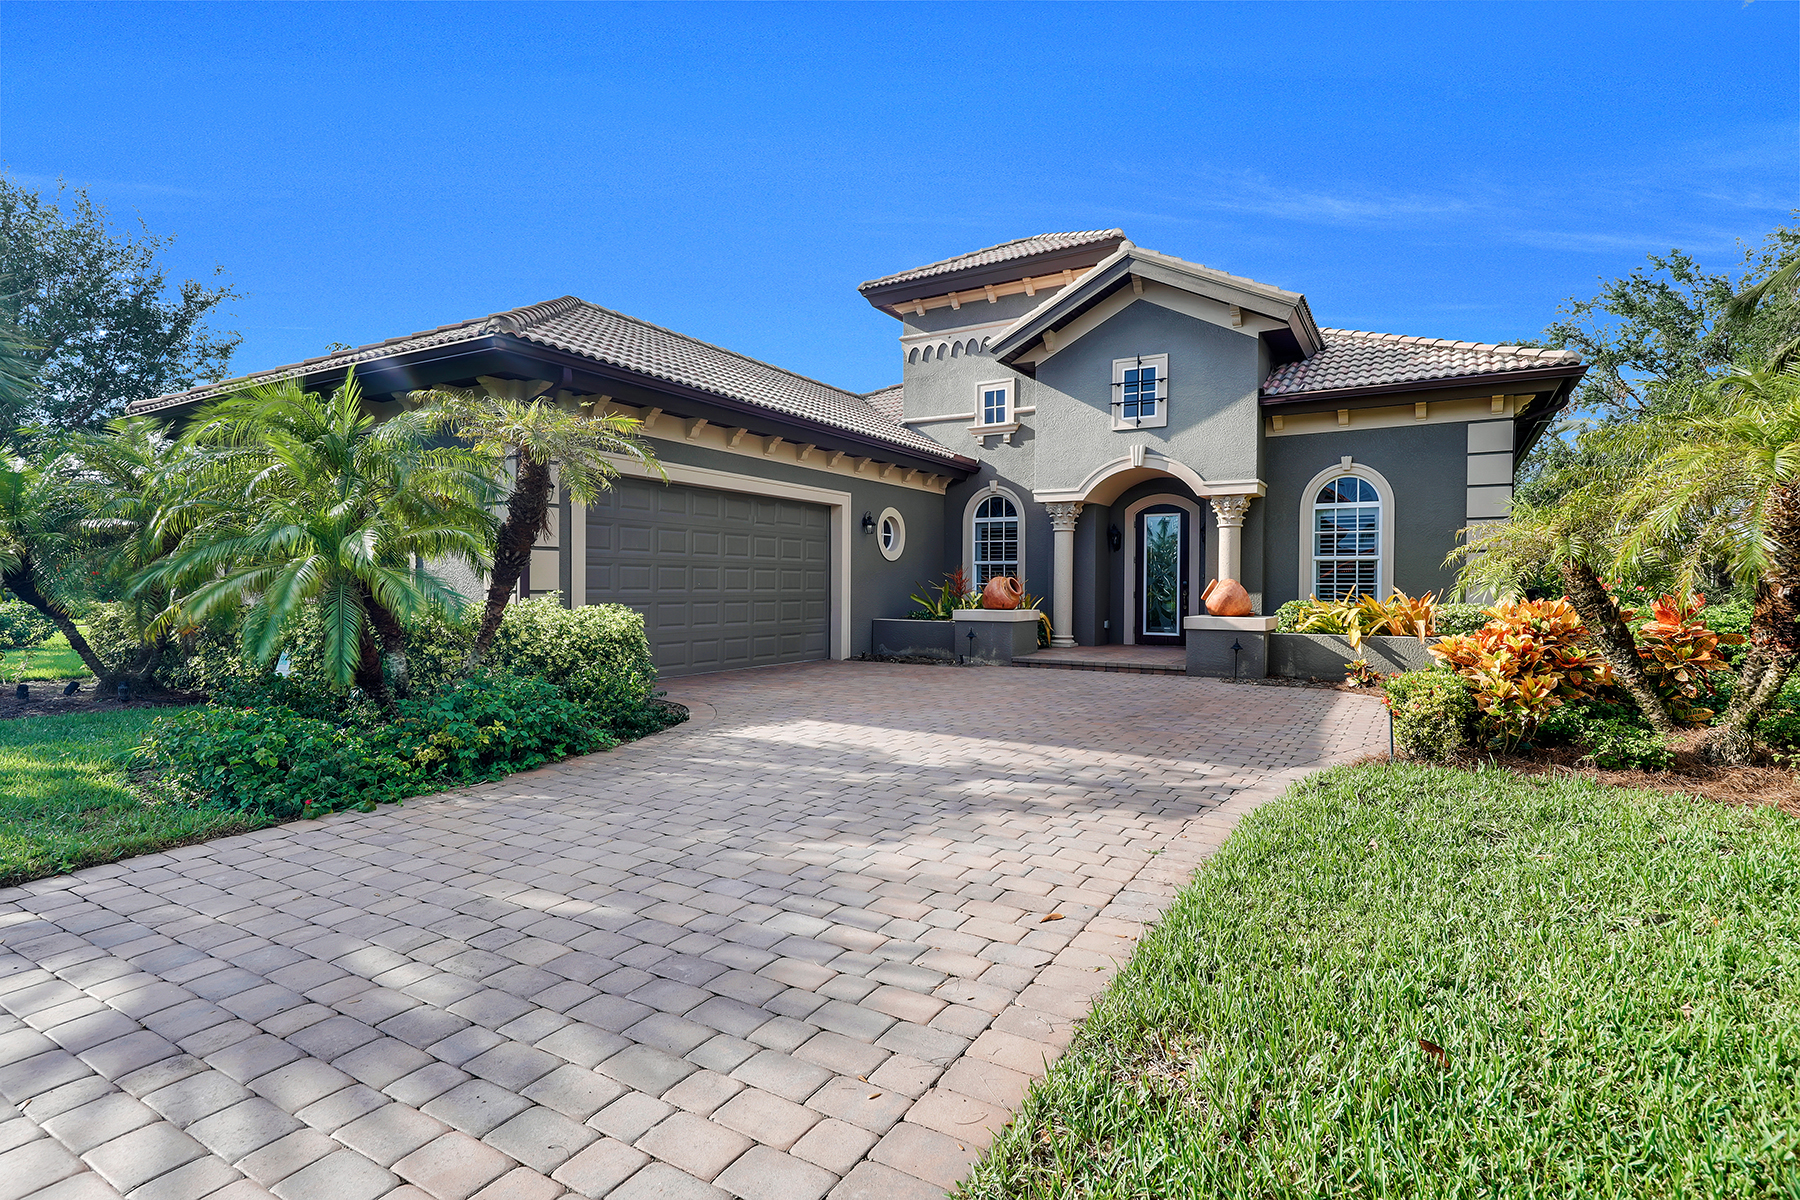 Single Family Home for Sale at LELY RESORT 7762 Cottesmore Dr, Naples, Florida, 34113 United States